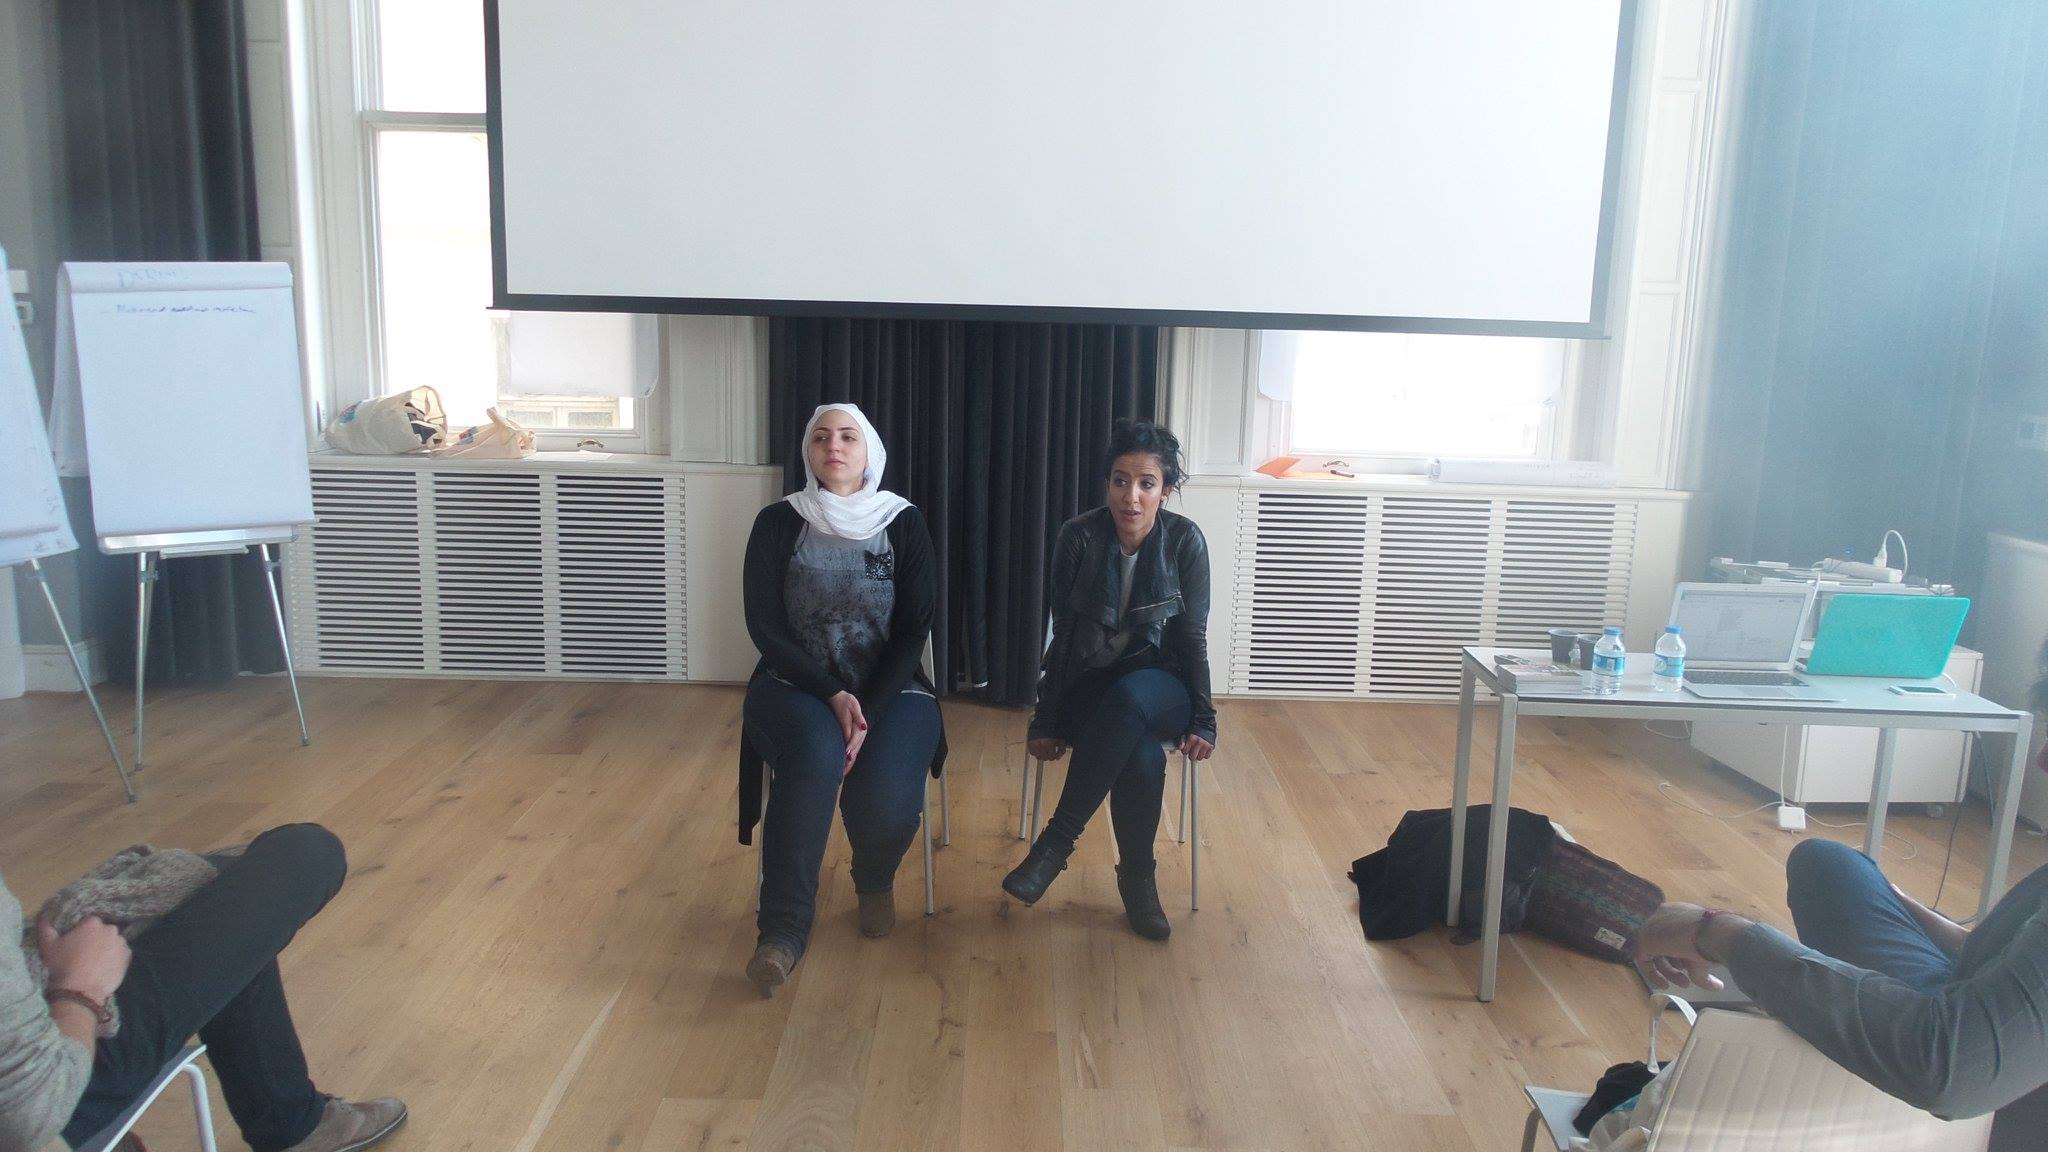 Raja Althaibani and Mayss Al-Zoubi at MENA convening in Turkey